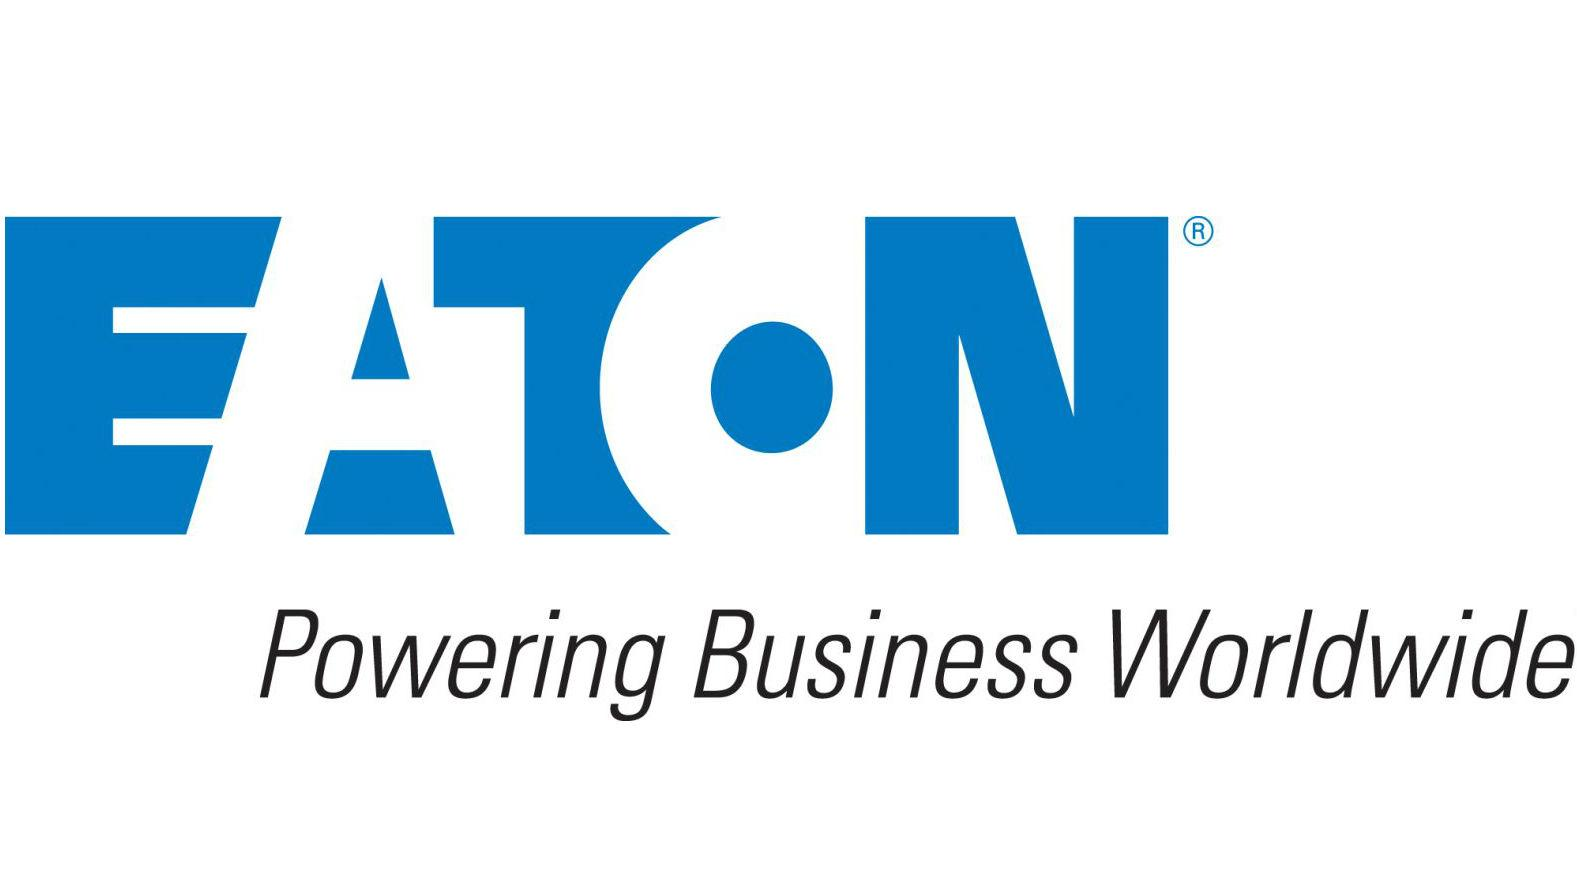 Eaton Corporation logo with the tagline Powering Business Worldwide